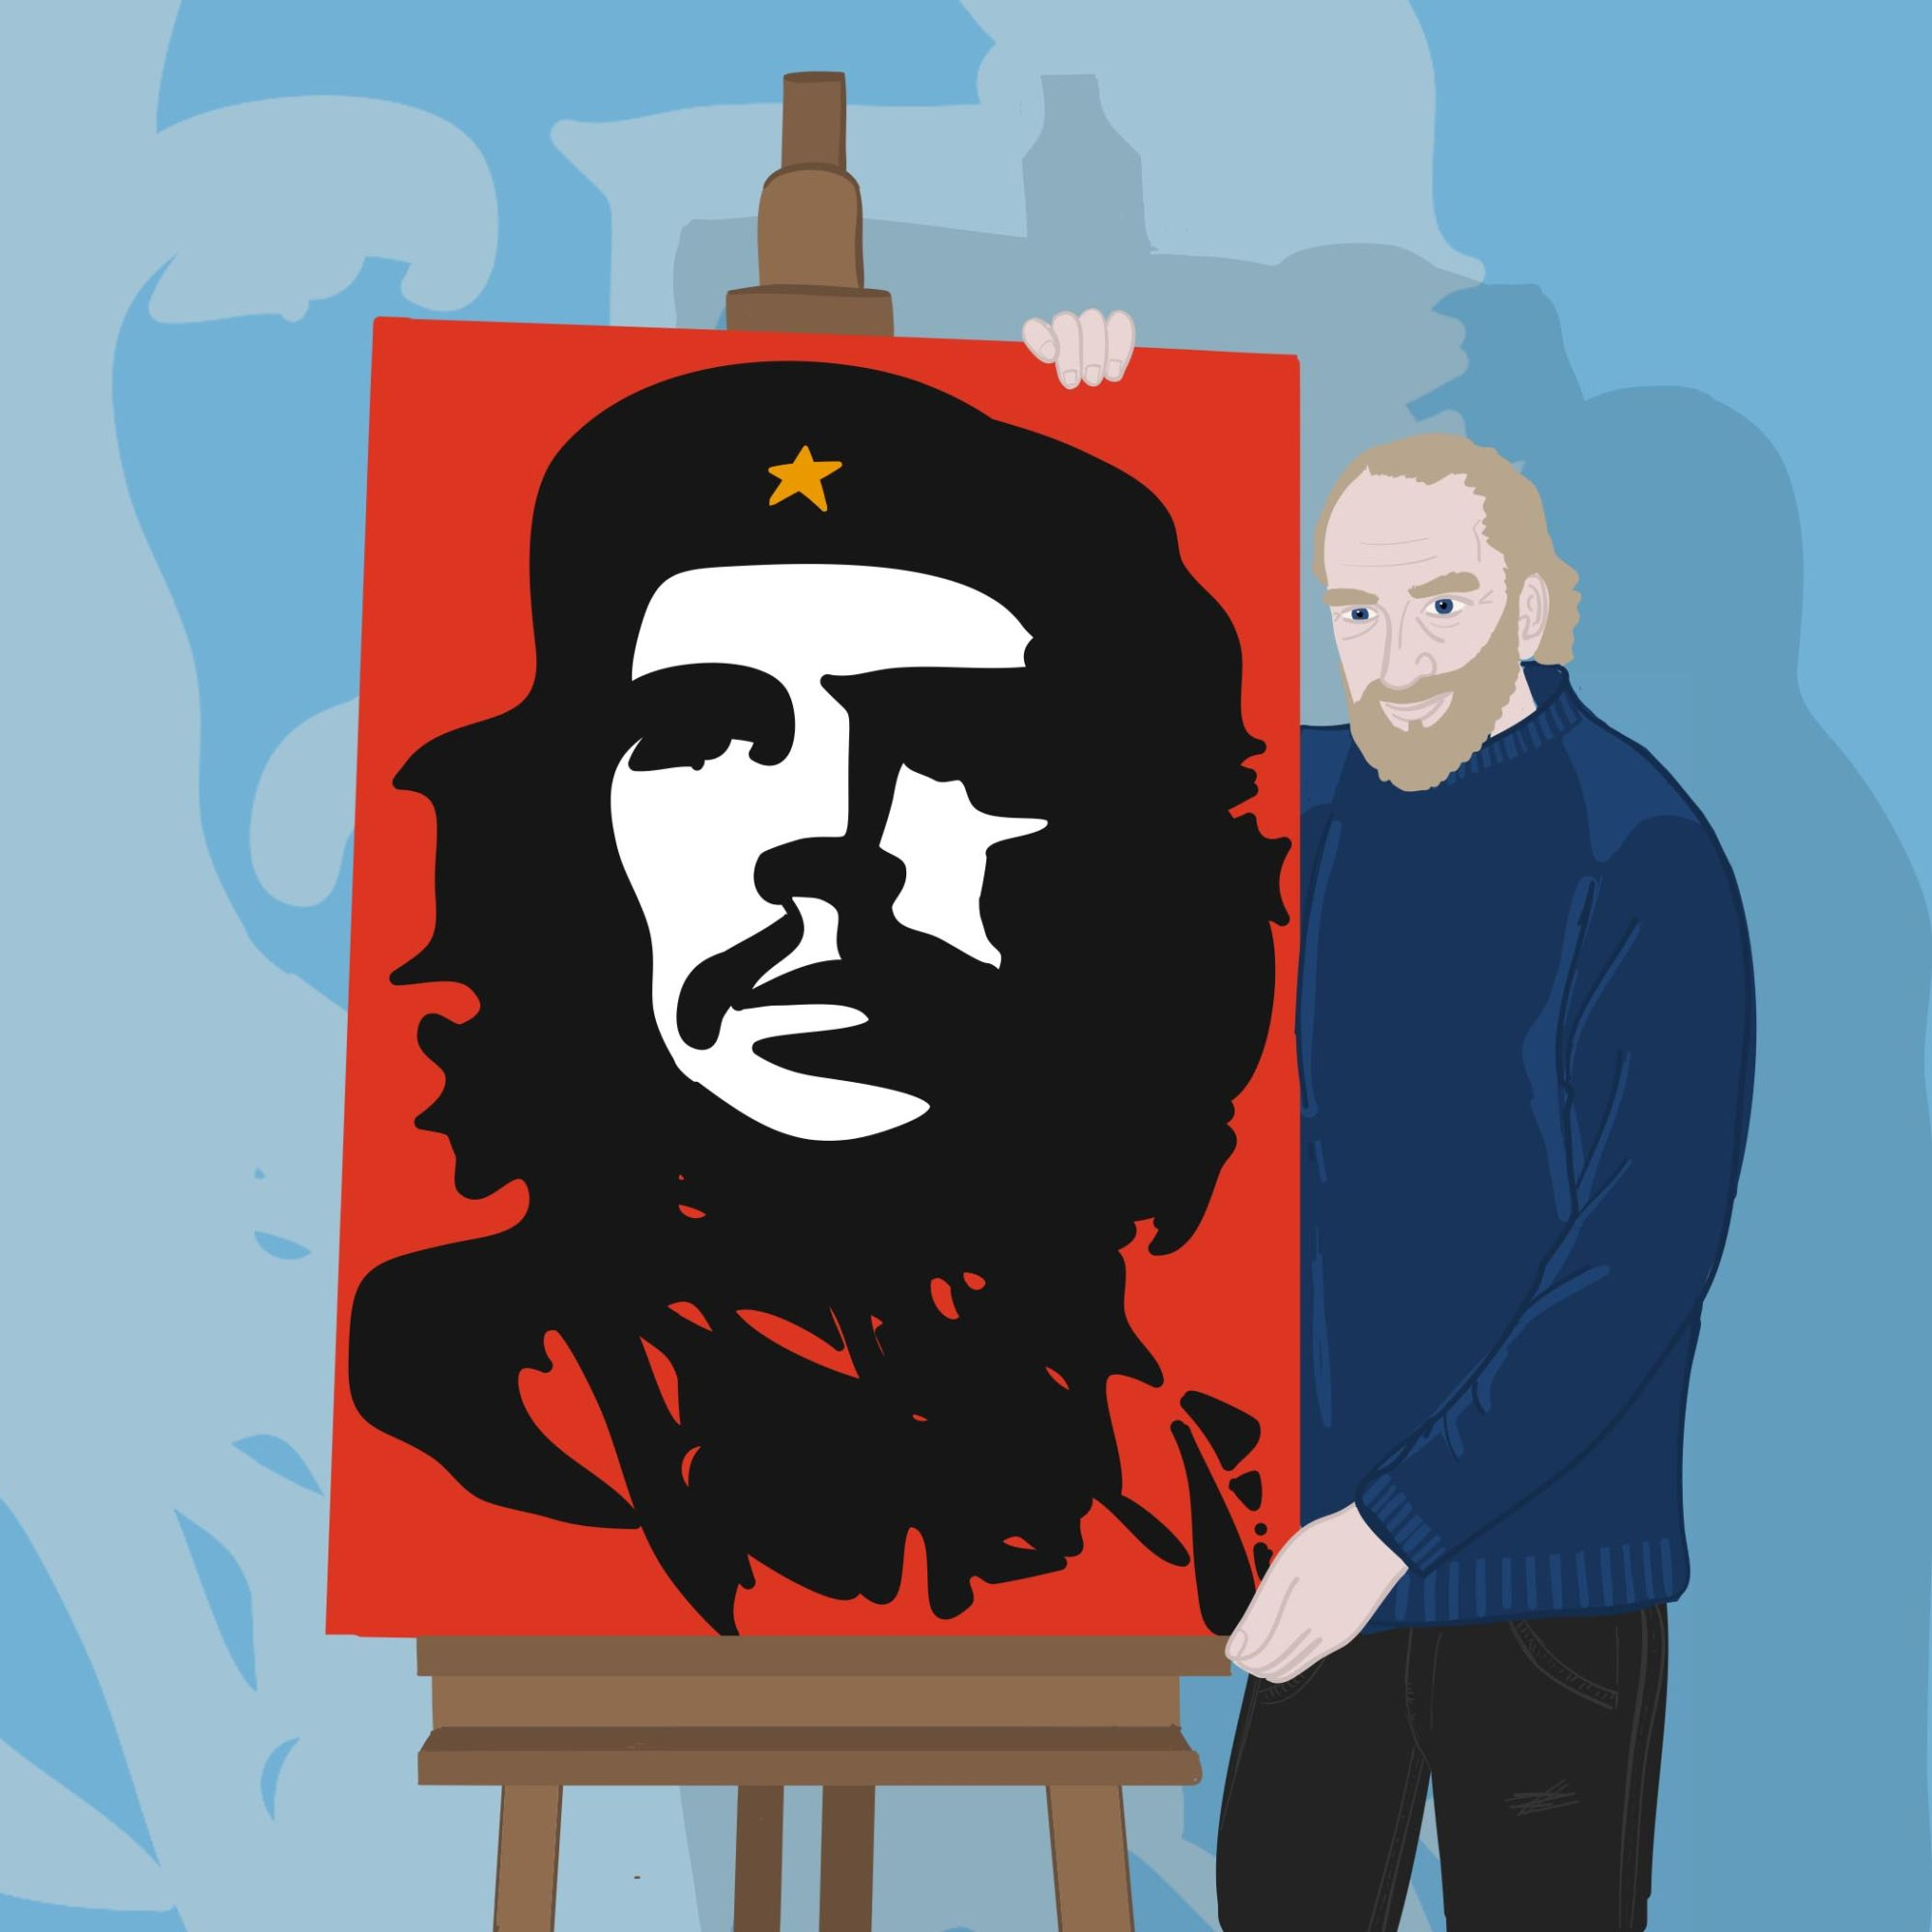 Illustration of Jim Fitzpatrick with Che Guevara portrait